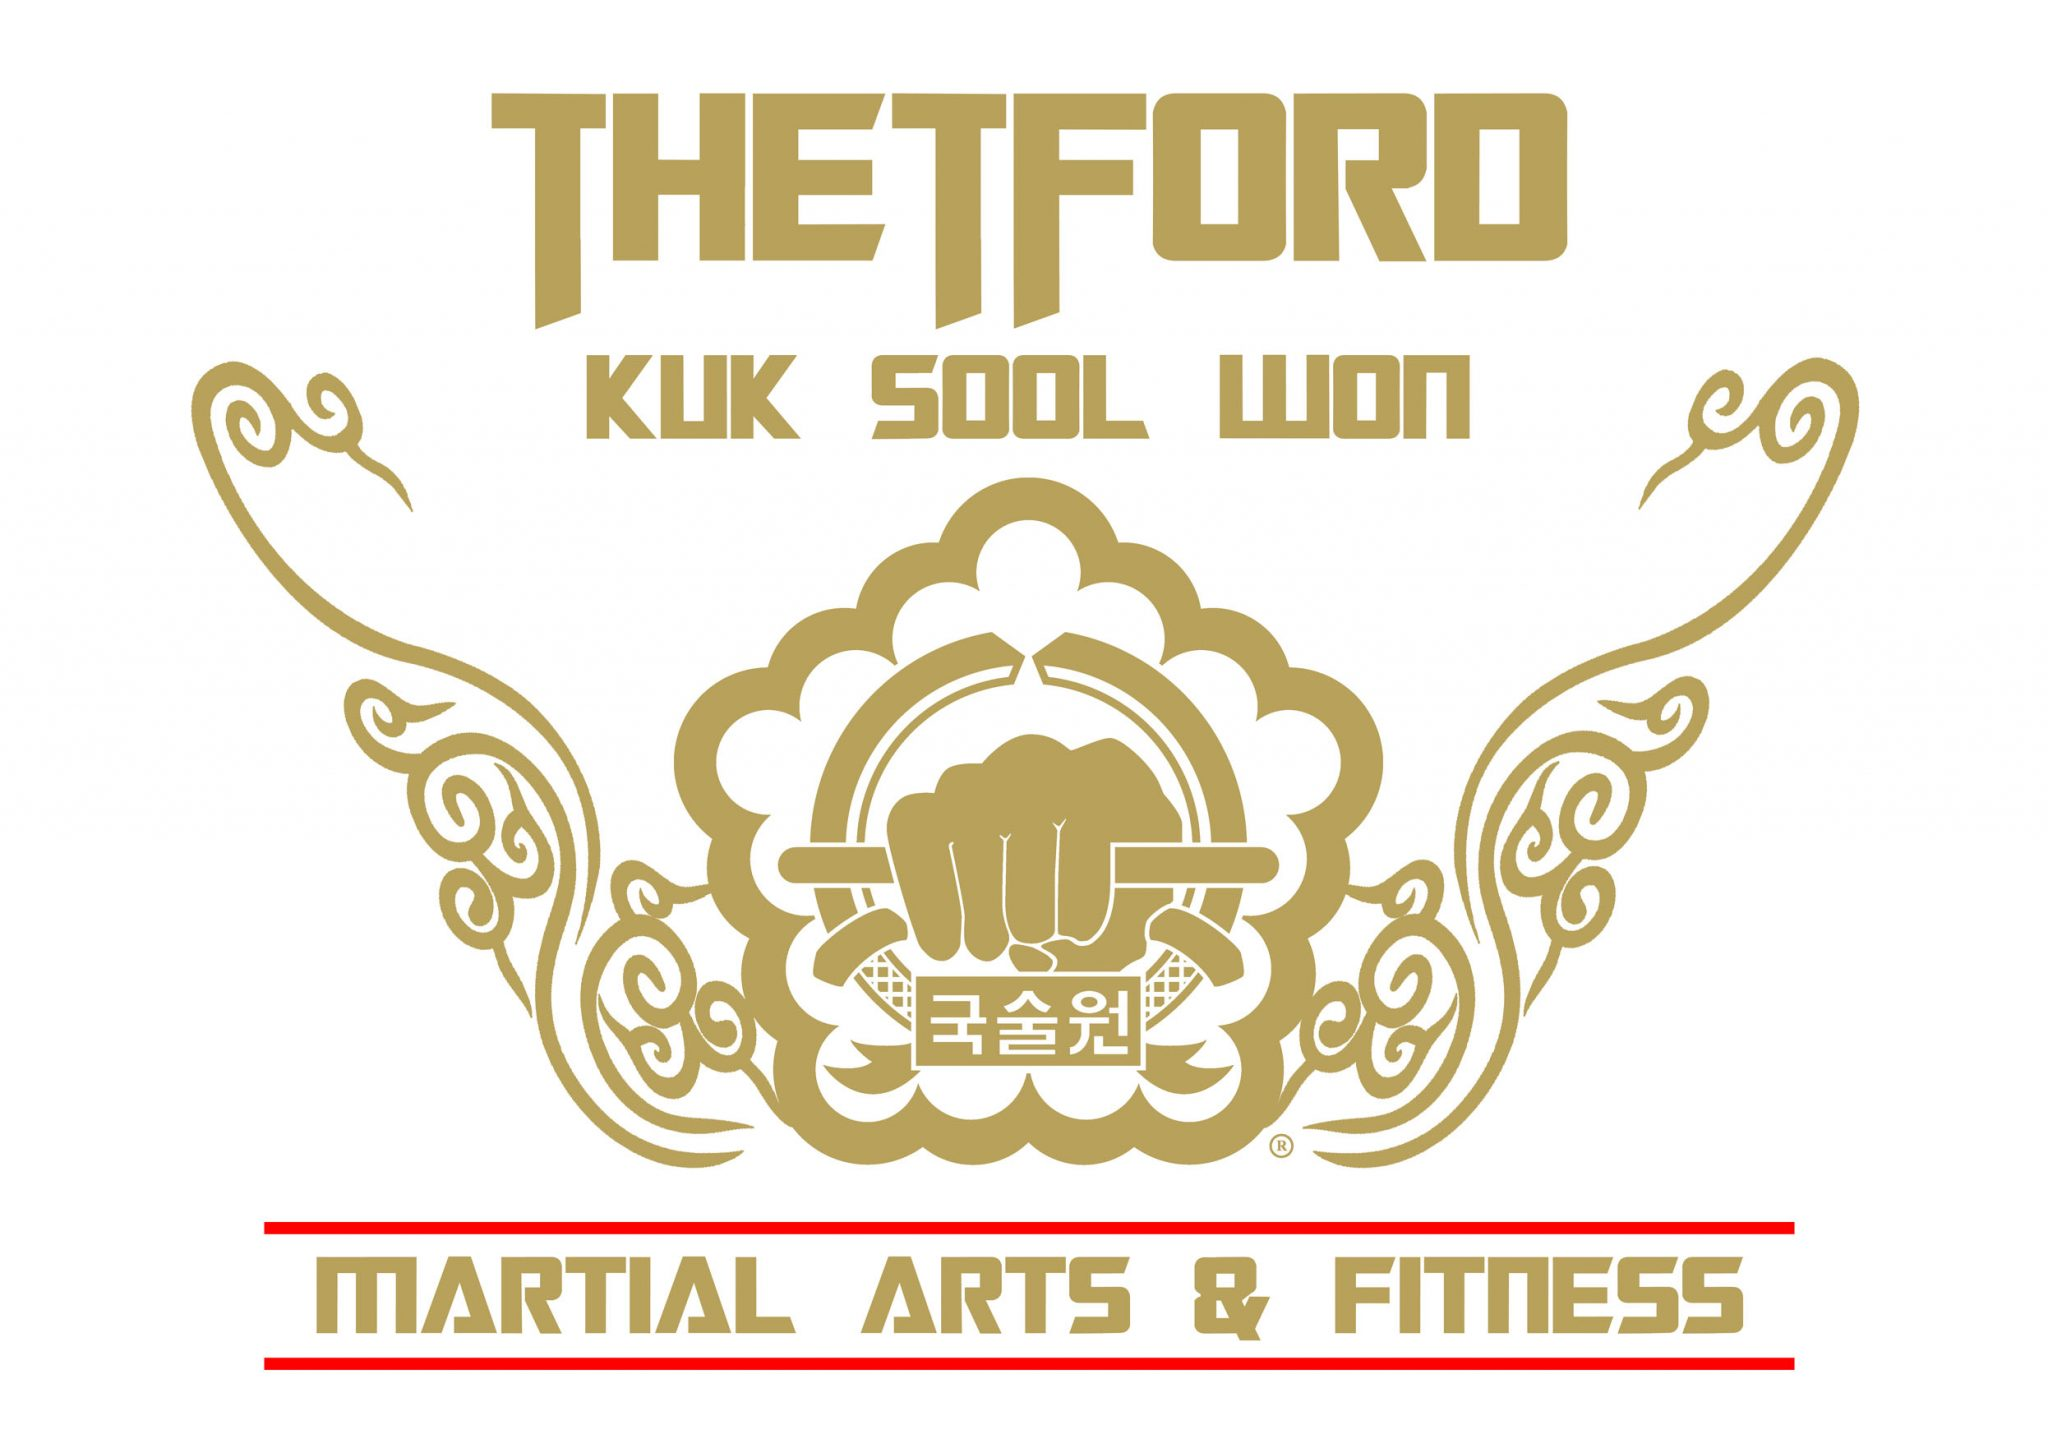 Kuk Sool Won of Thetford - Martial Arts Classes in Thetford